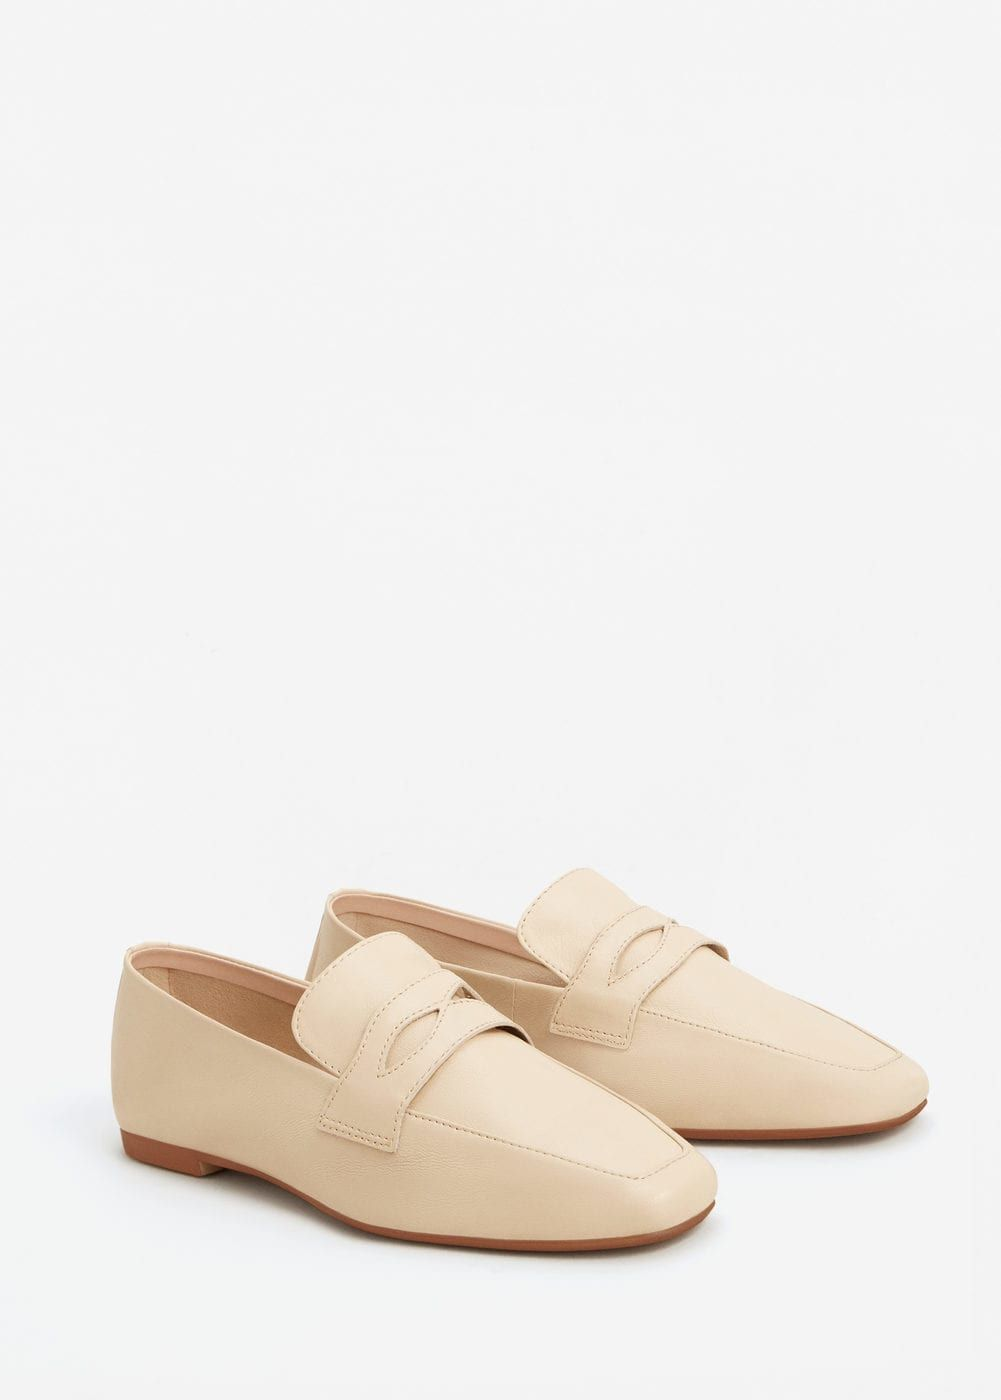 29c52a94794 Leather penny loafers - Woman